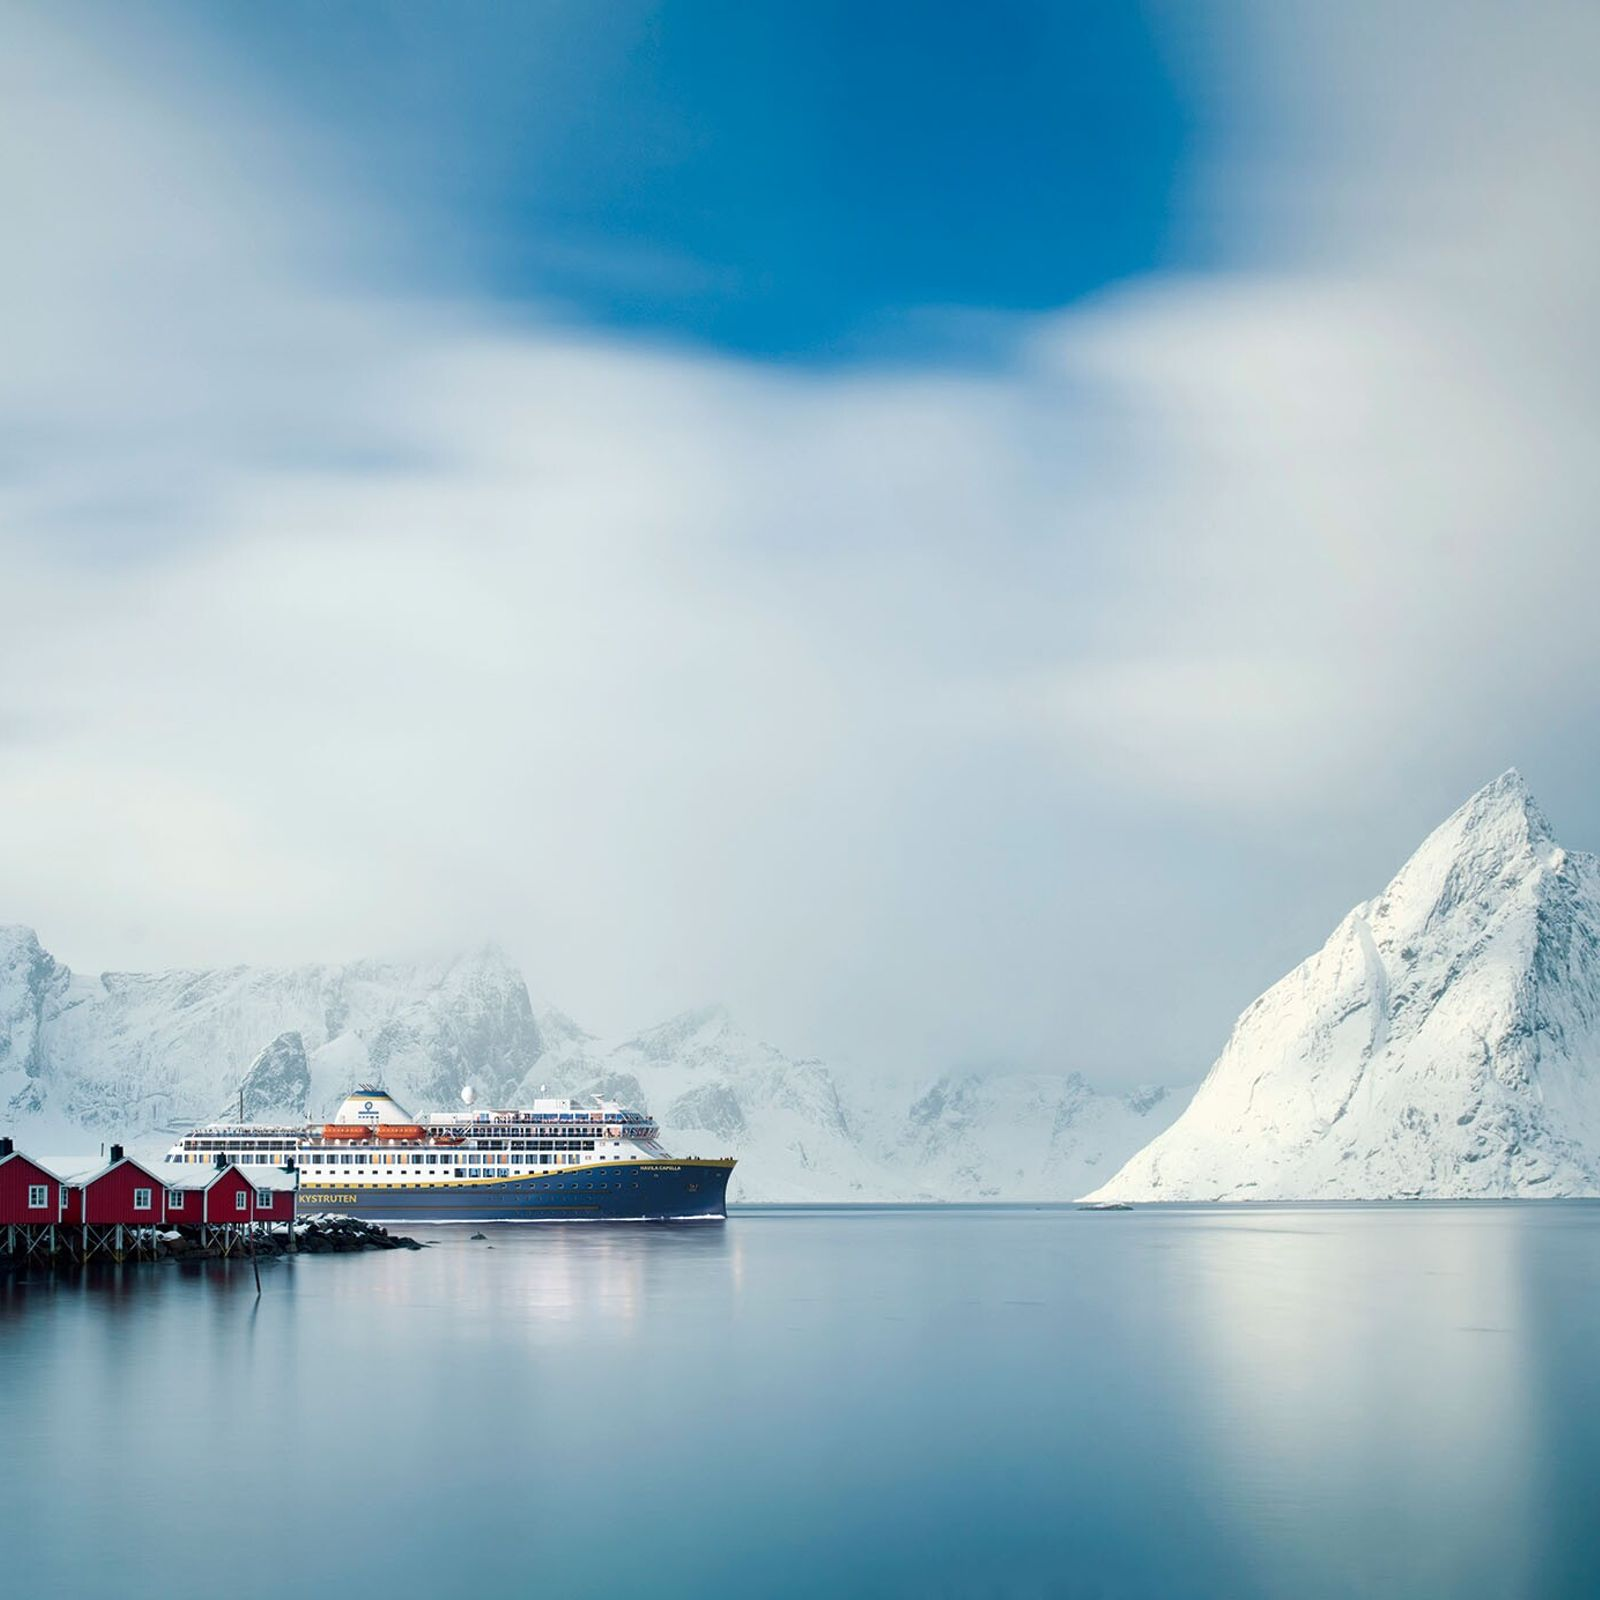 Lofoten in Norway is known for its colourful fishing villages and dramatic mountain scenery.